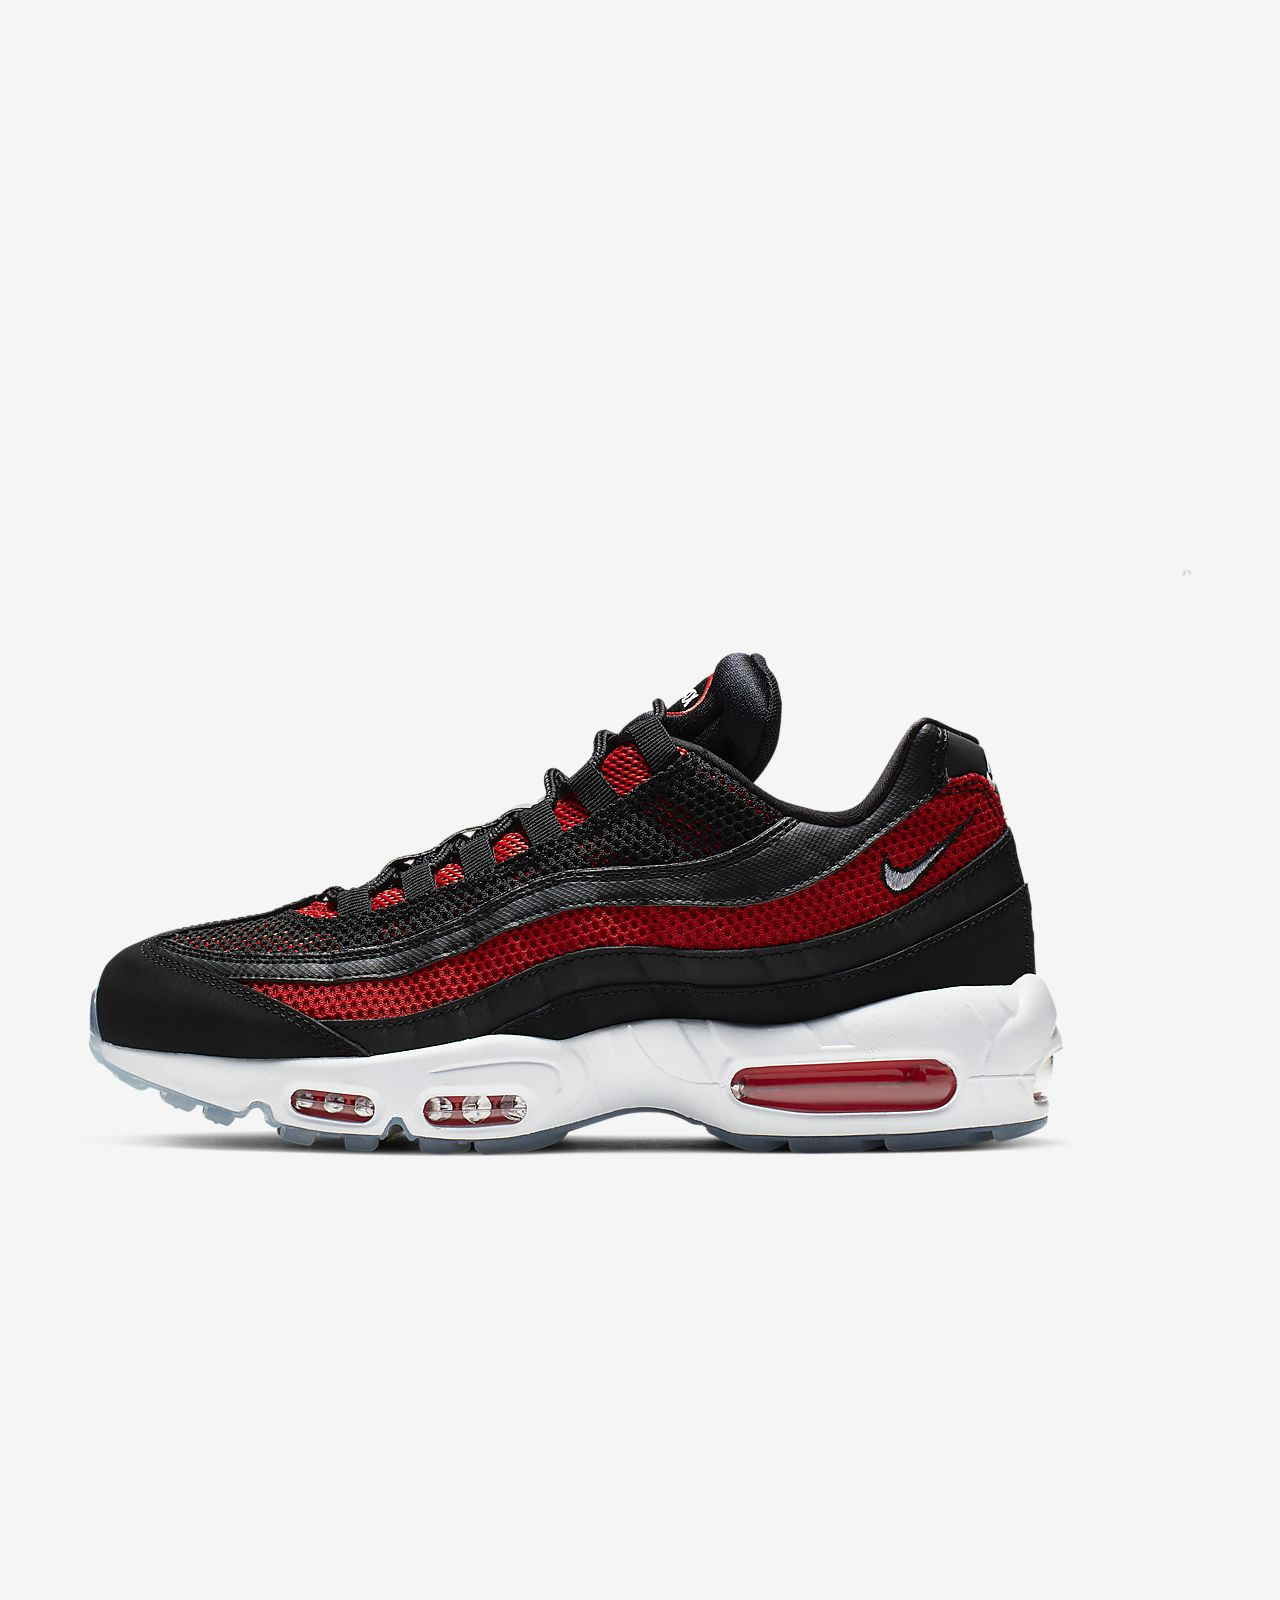 wholesale dealer d6176 f74bf ... Chaussure Nike Air Max 95 Essential pour Homme